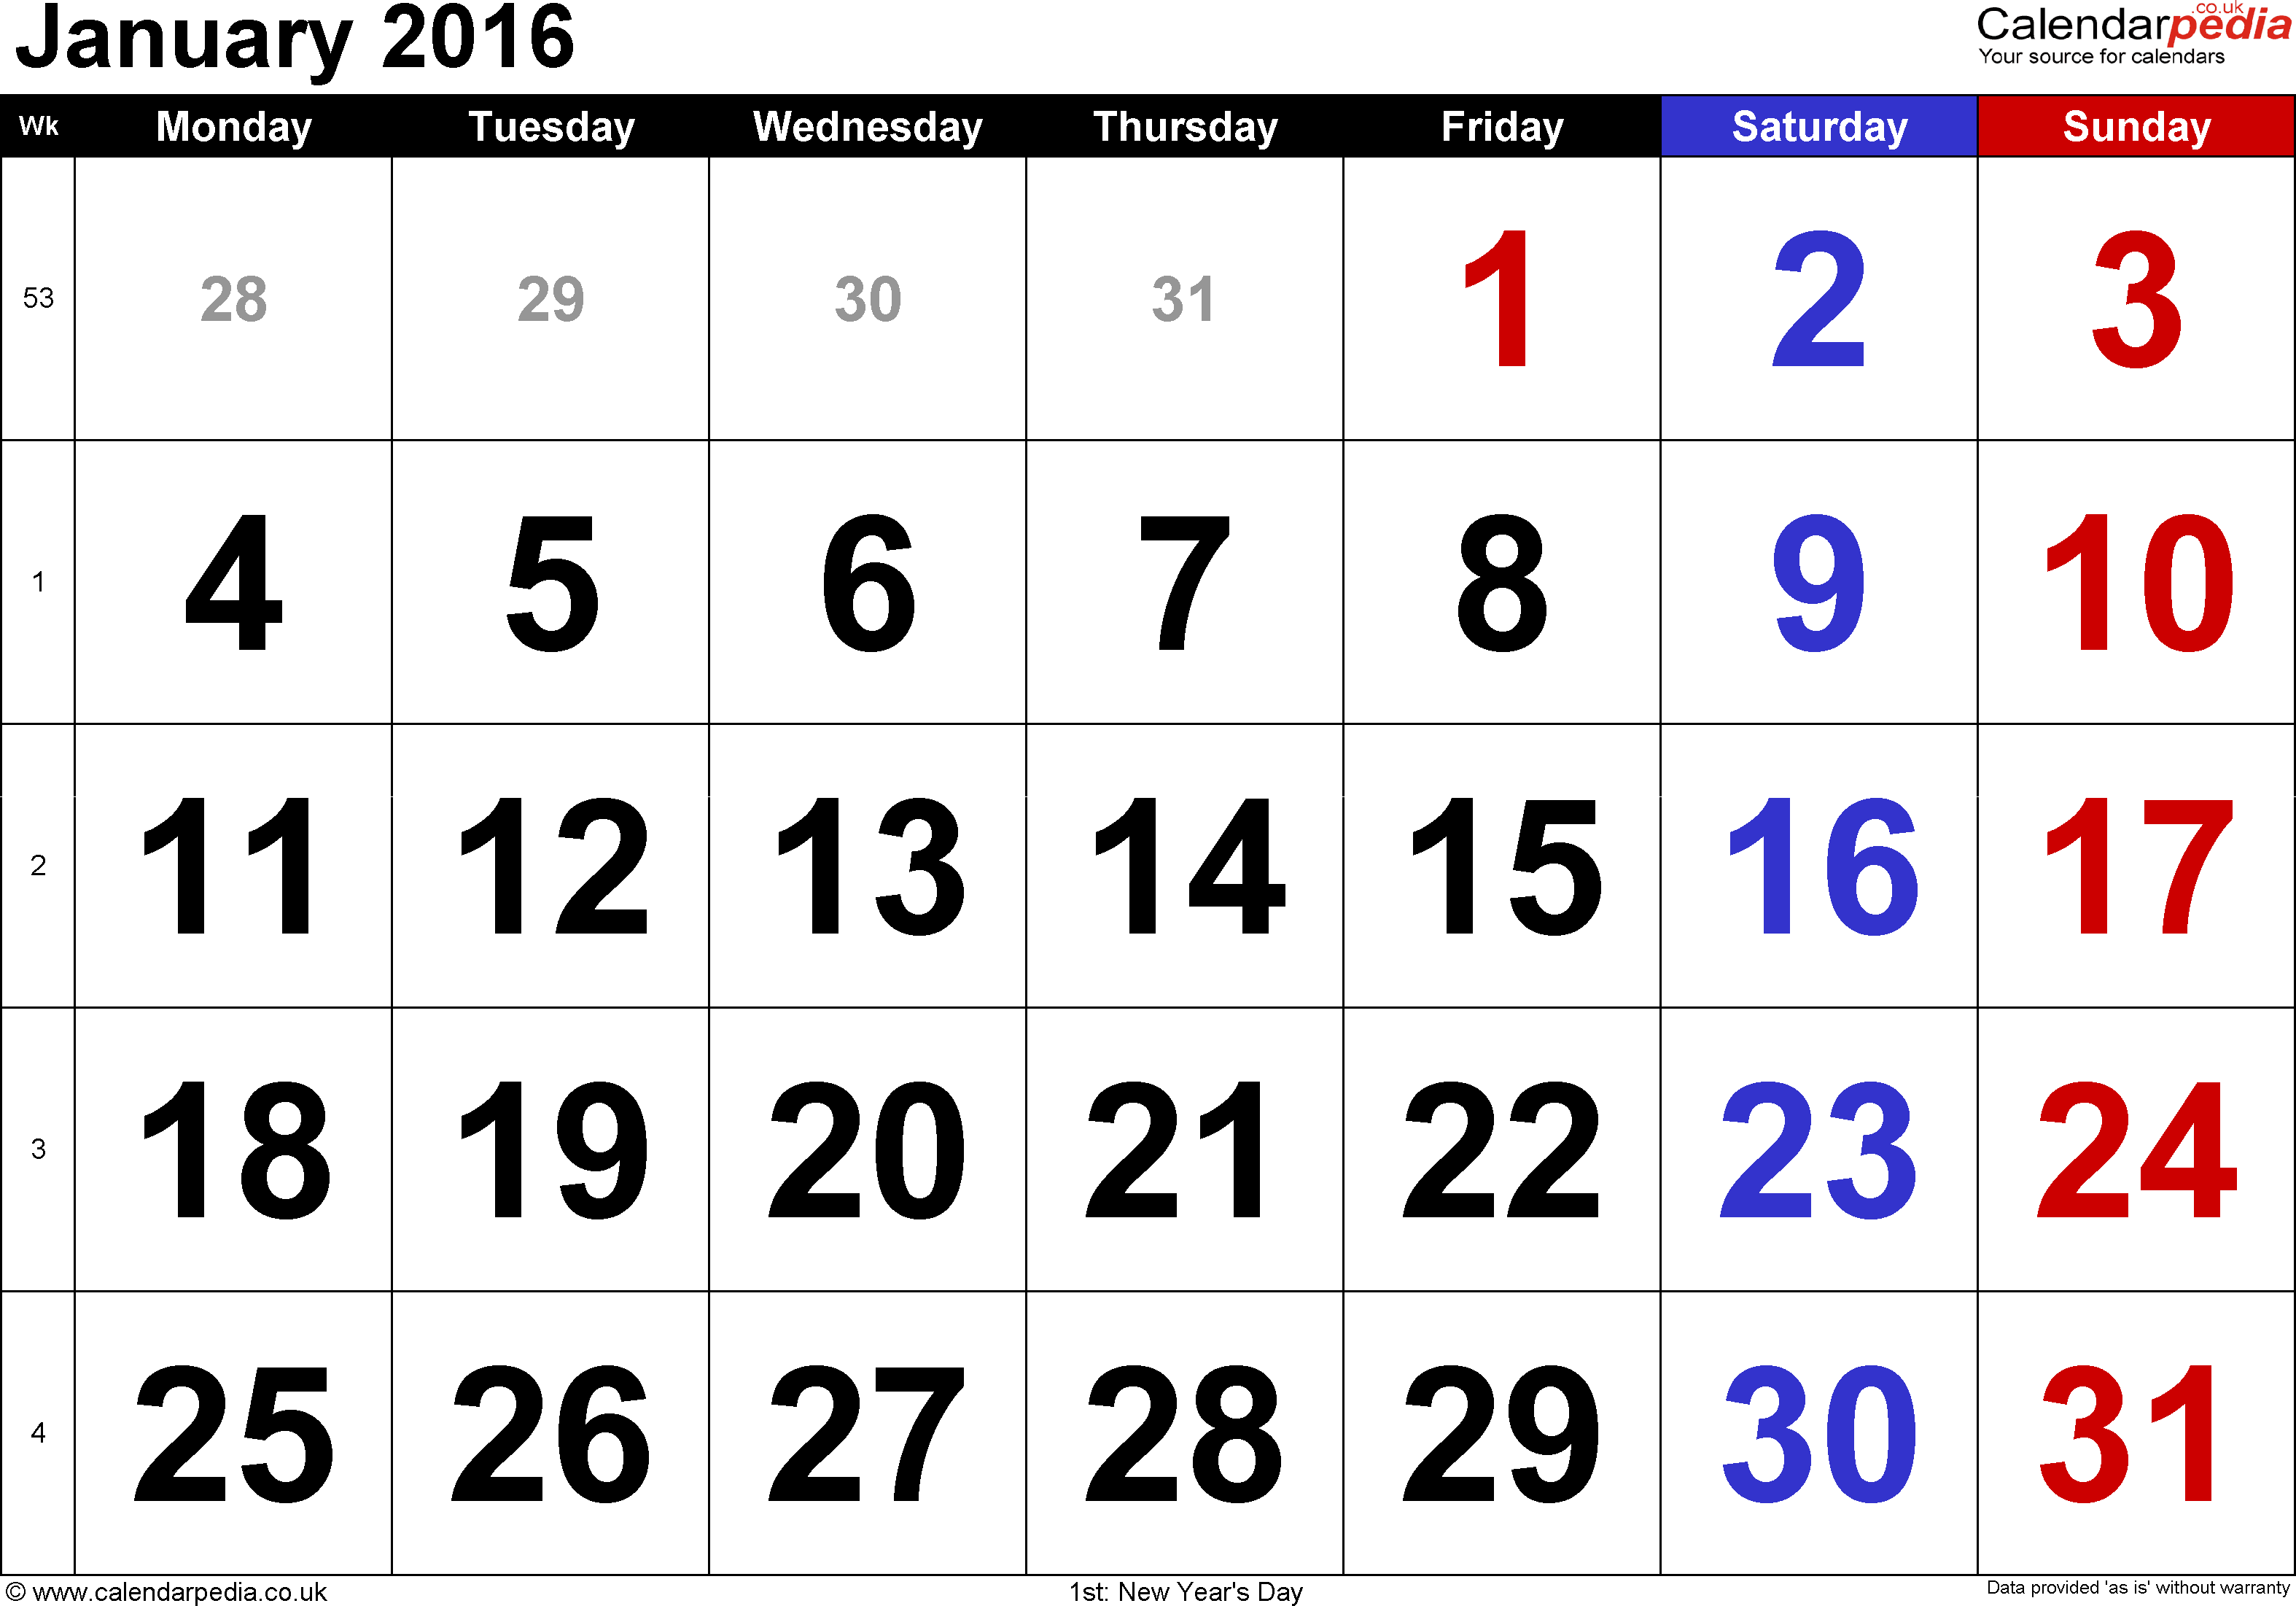 2016 january calendar clipart png royalty free 2016 january calendar clipart - ClipartFest png royalty free